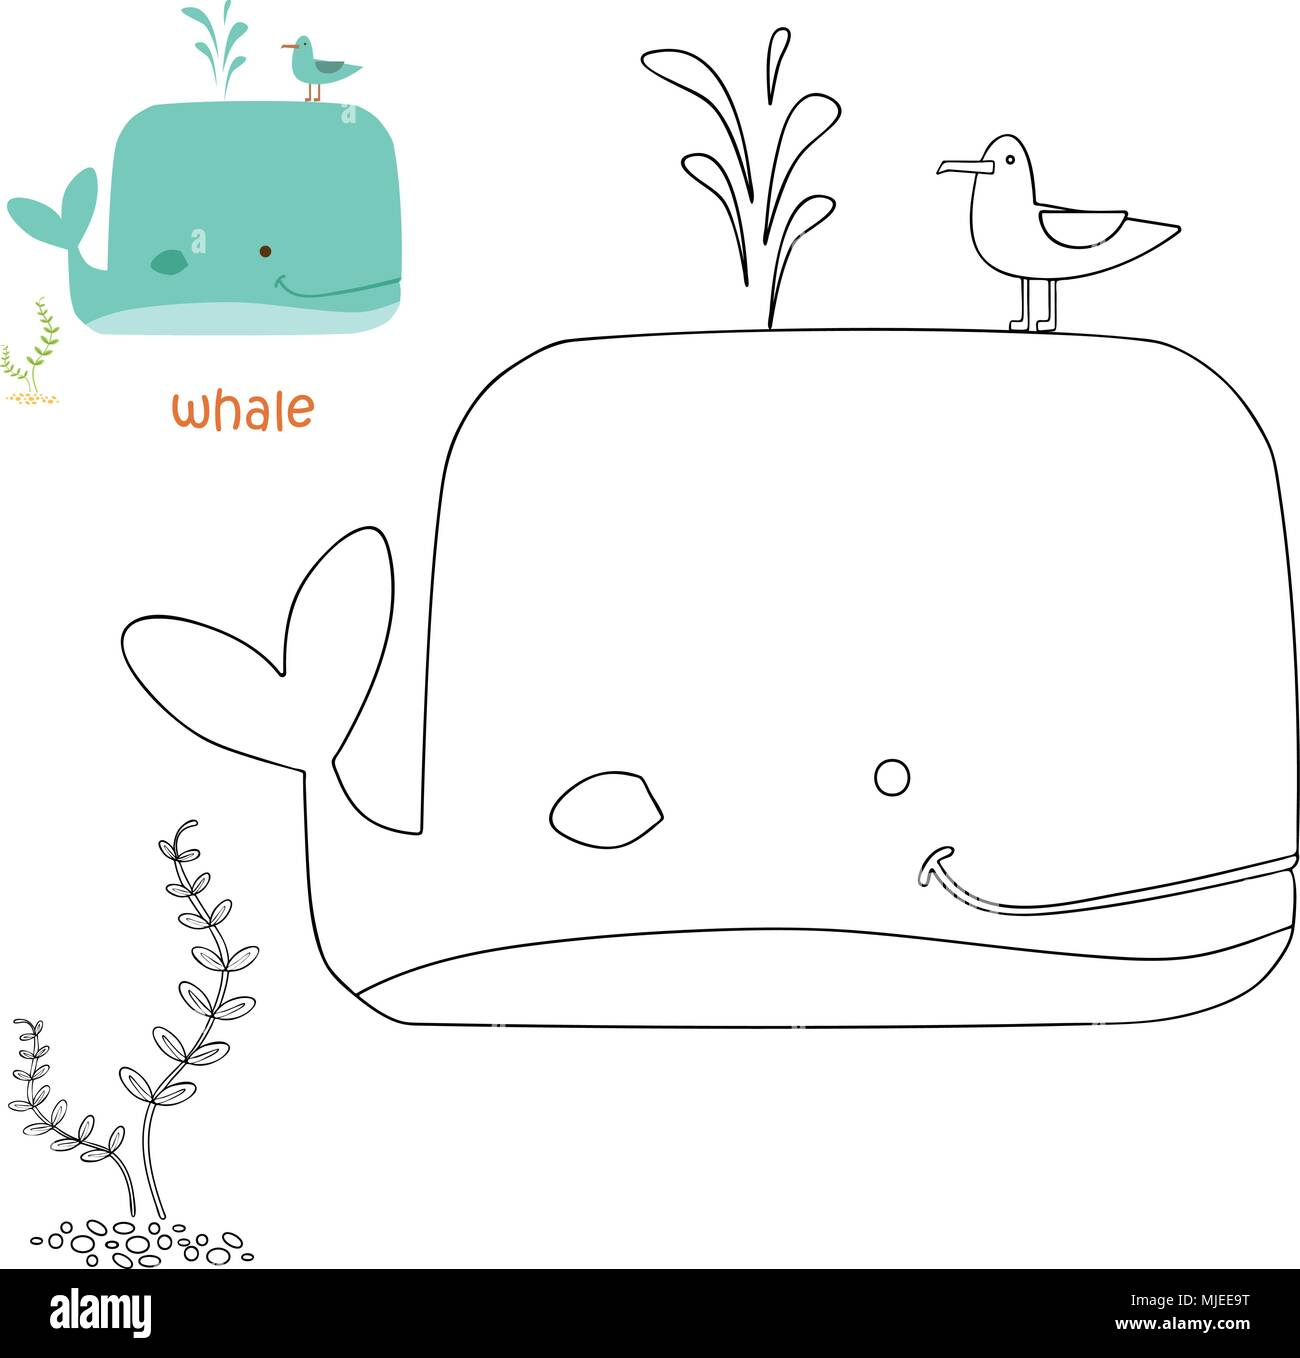 Kids coloriages - whale Photo Stock